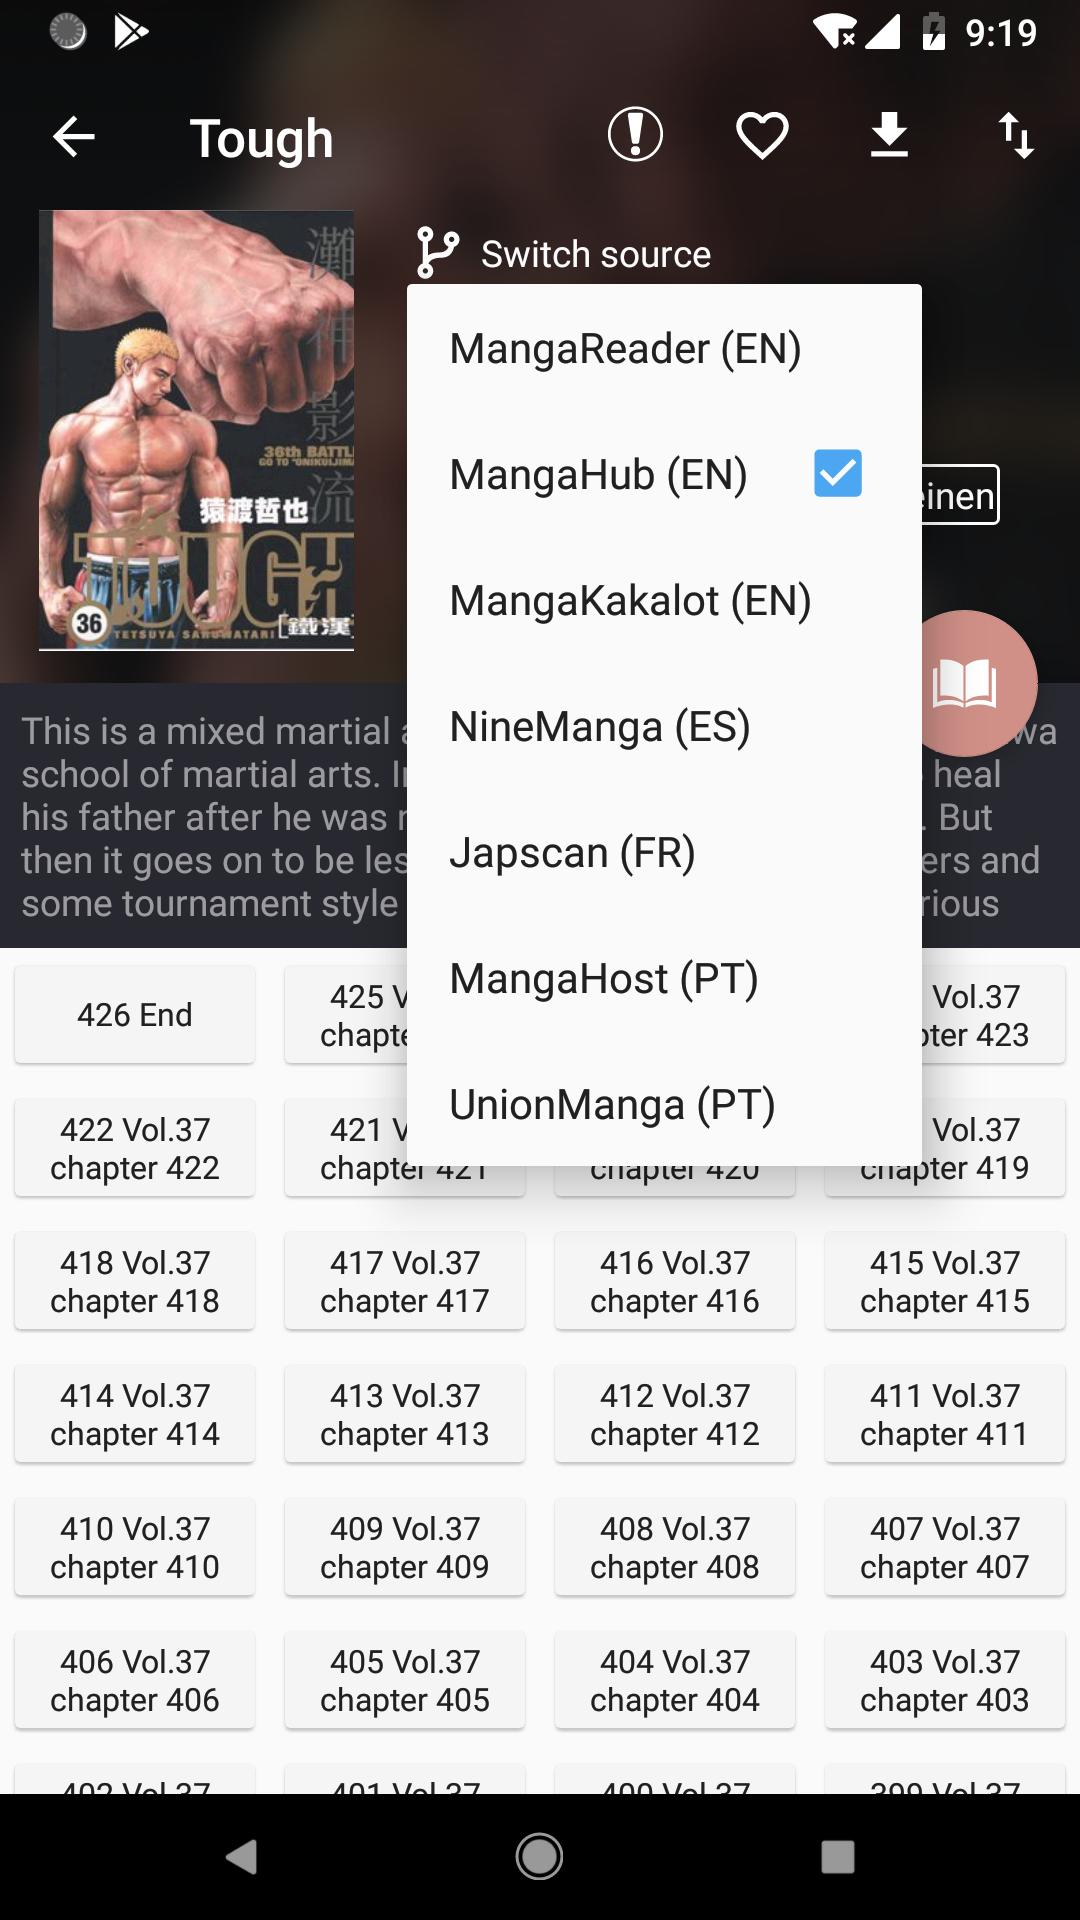 Manga Geek Free Manga Reader App 1.2.1.0 Screenshot 3